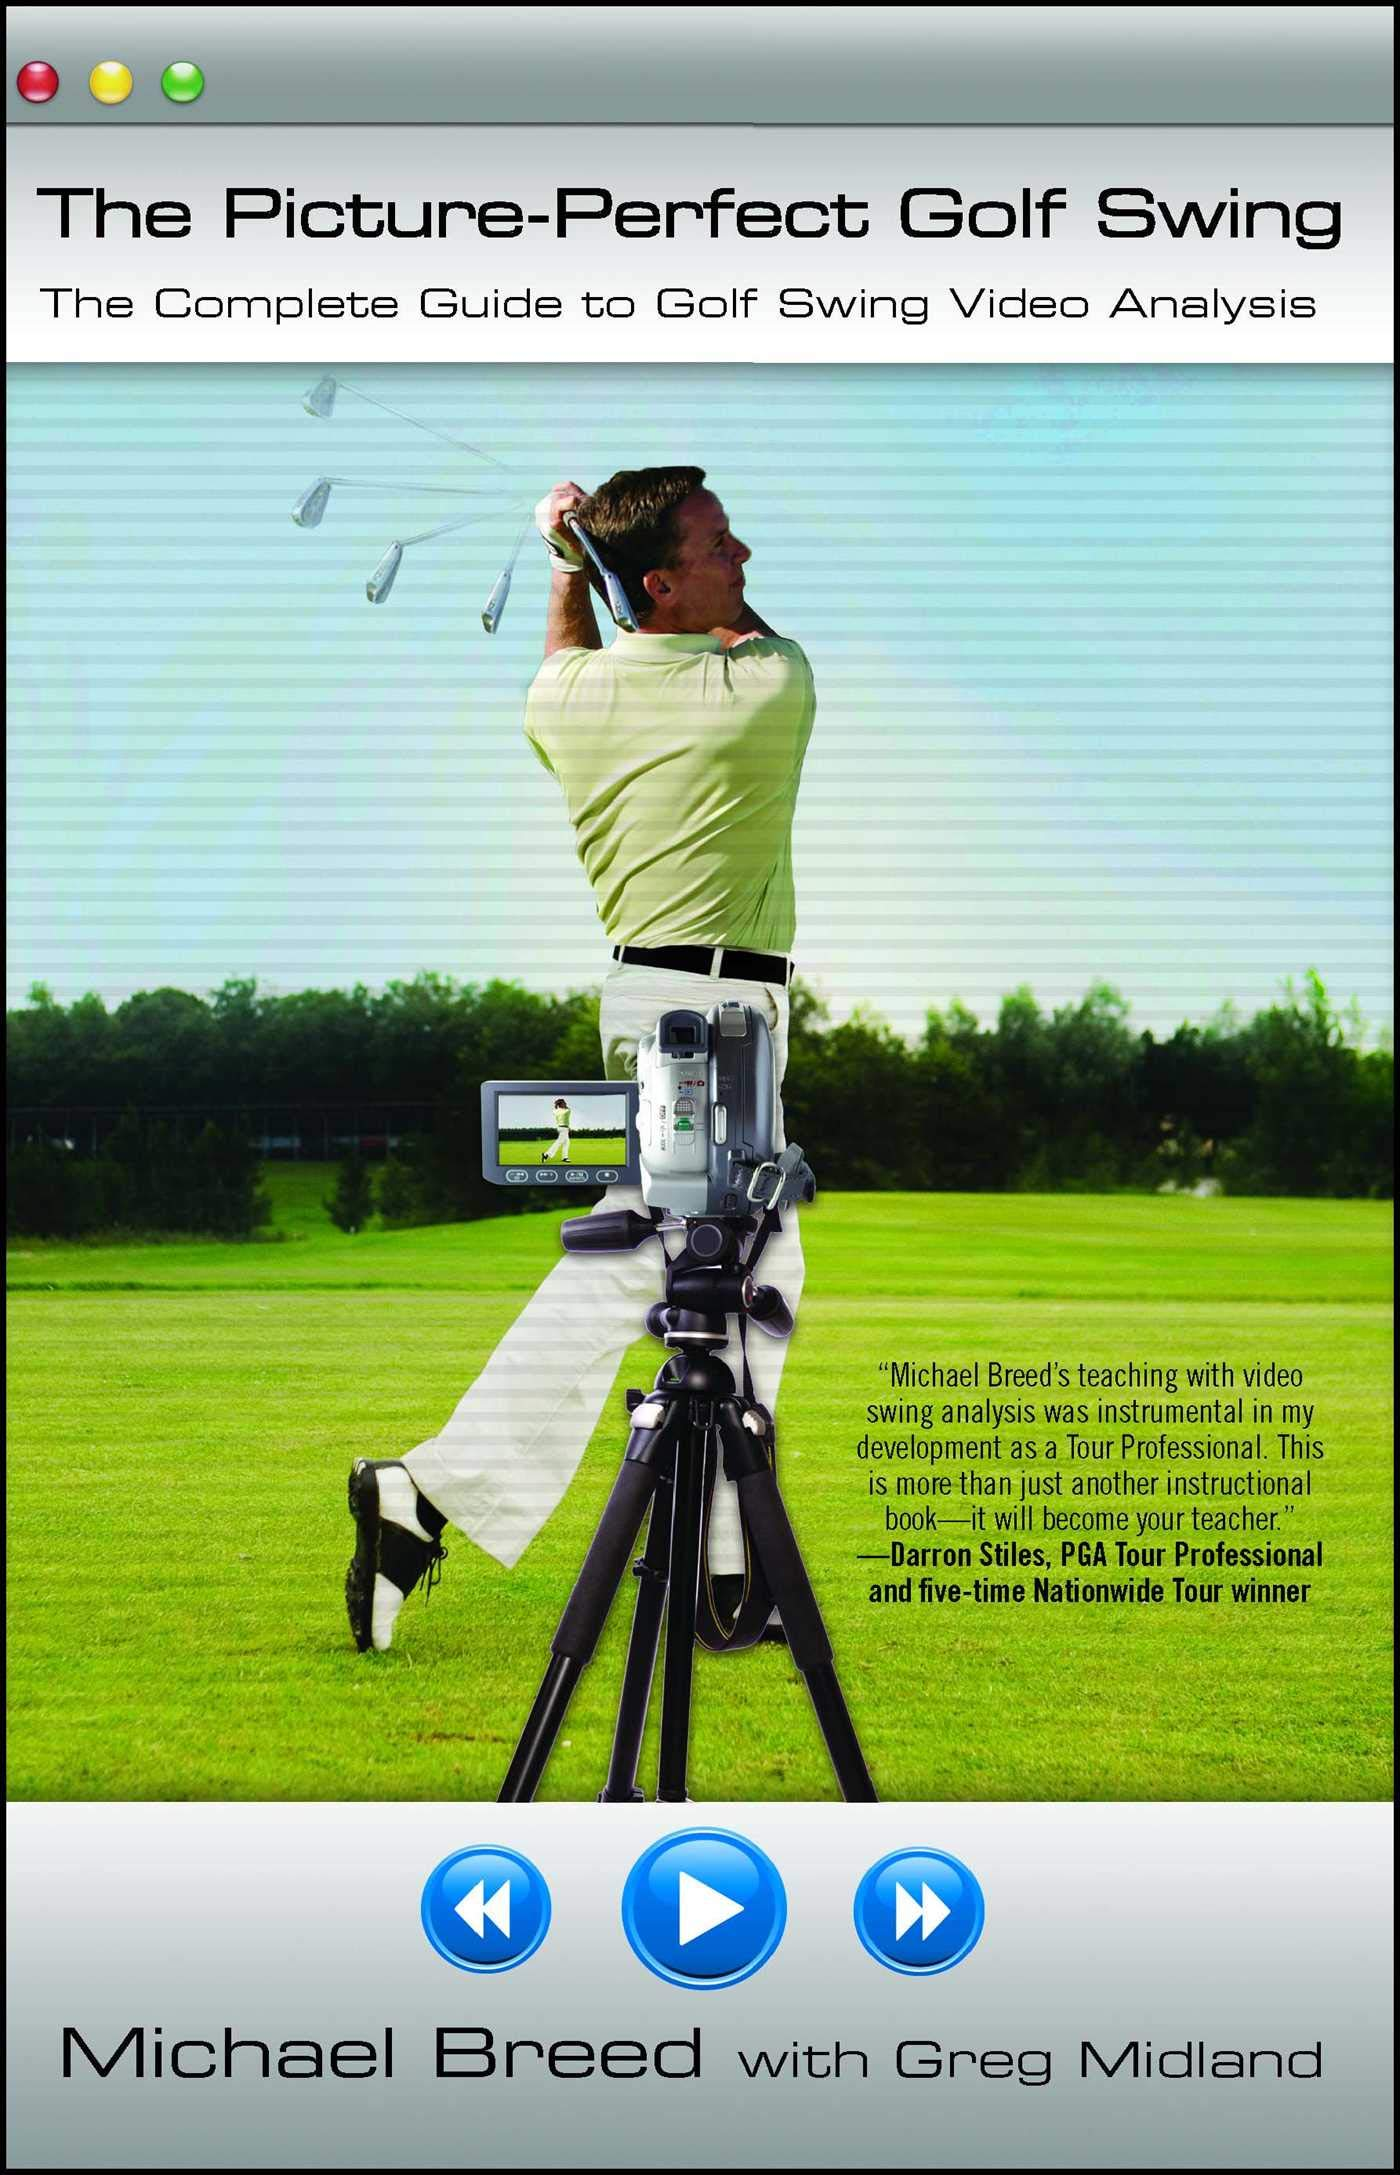 The Picture-Perfect Golf Swing: The Complete Guide to Golf Swing Video Analysis PDF